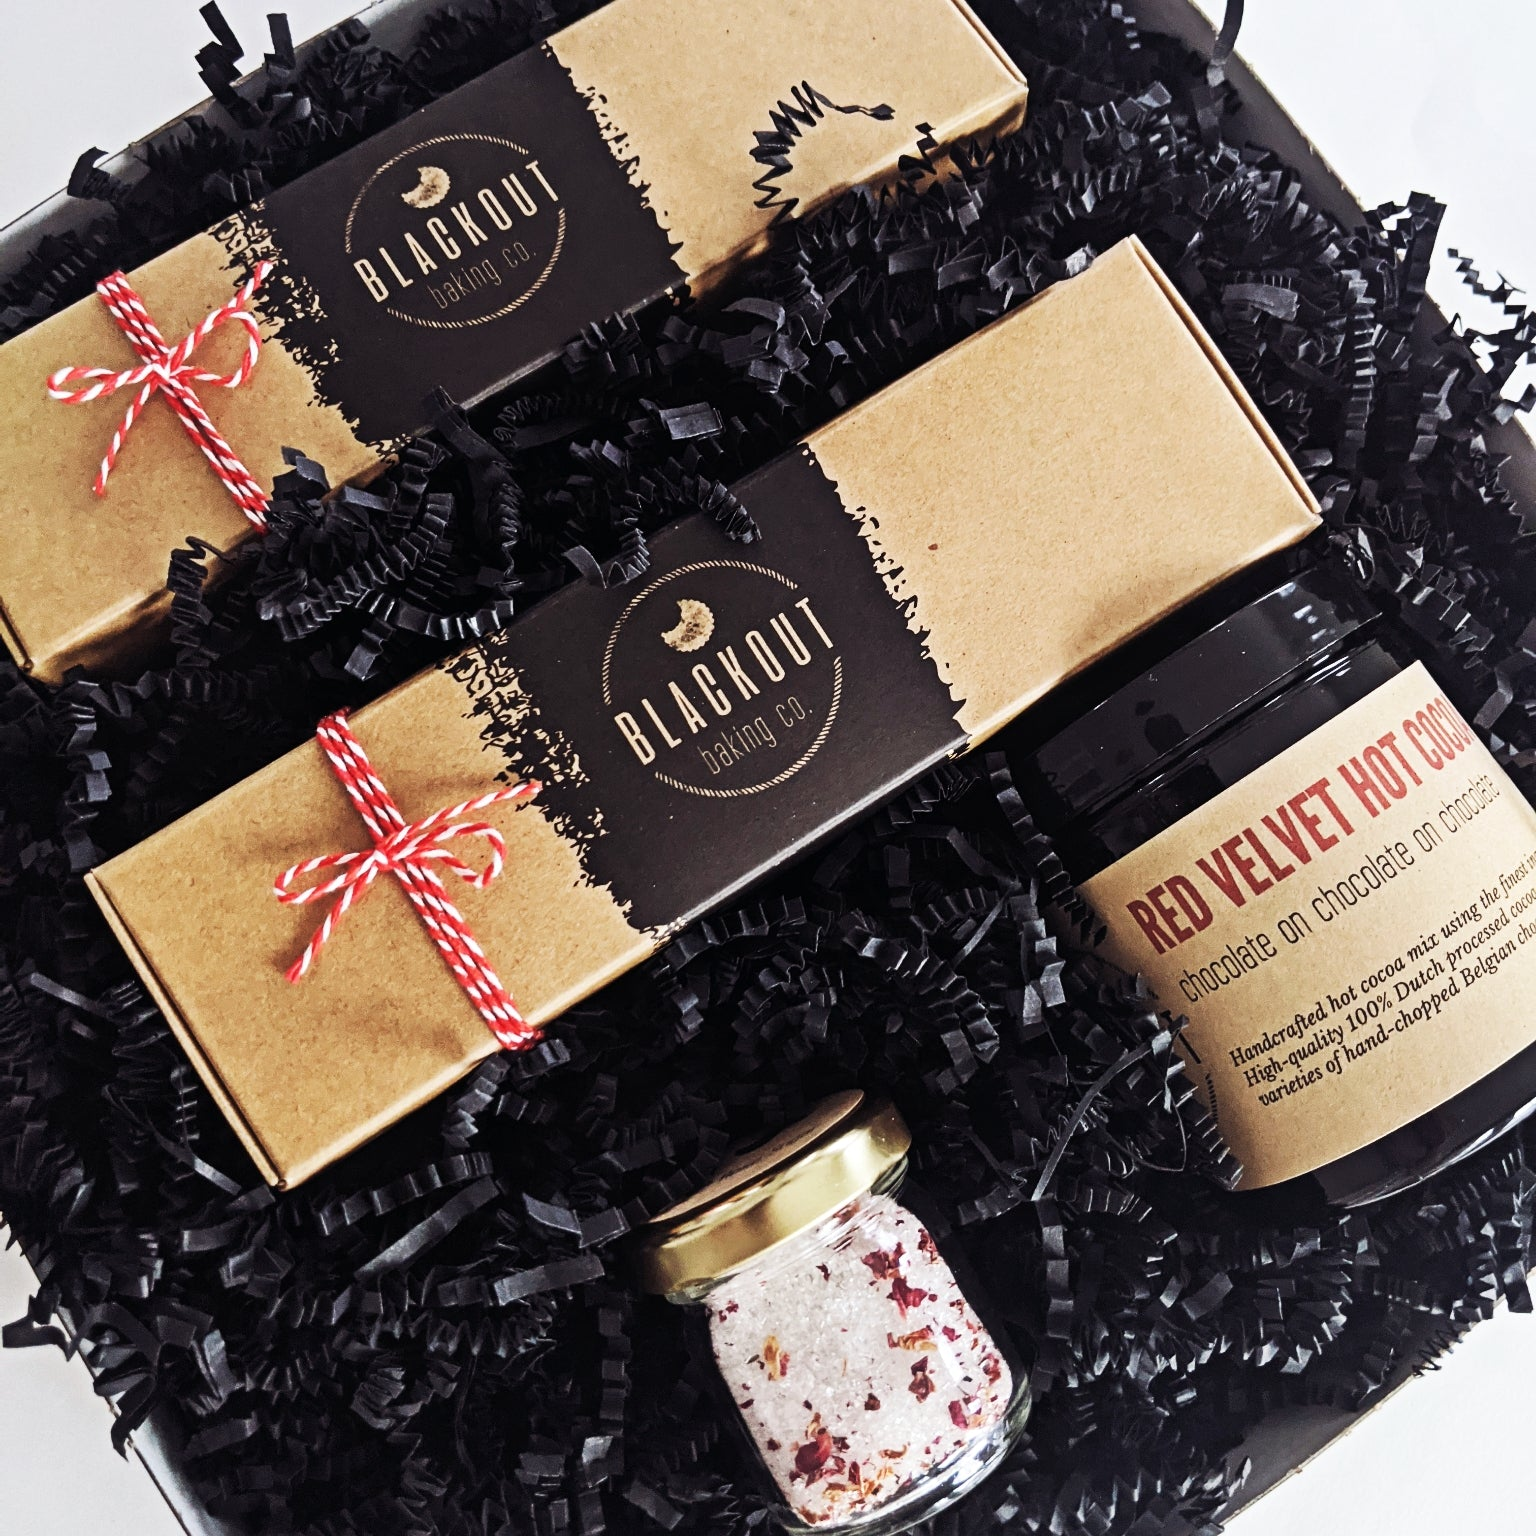 Blackout Baking Co Valentine's Gift Box 1